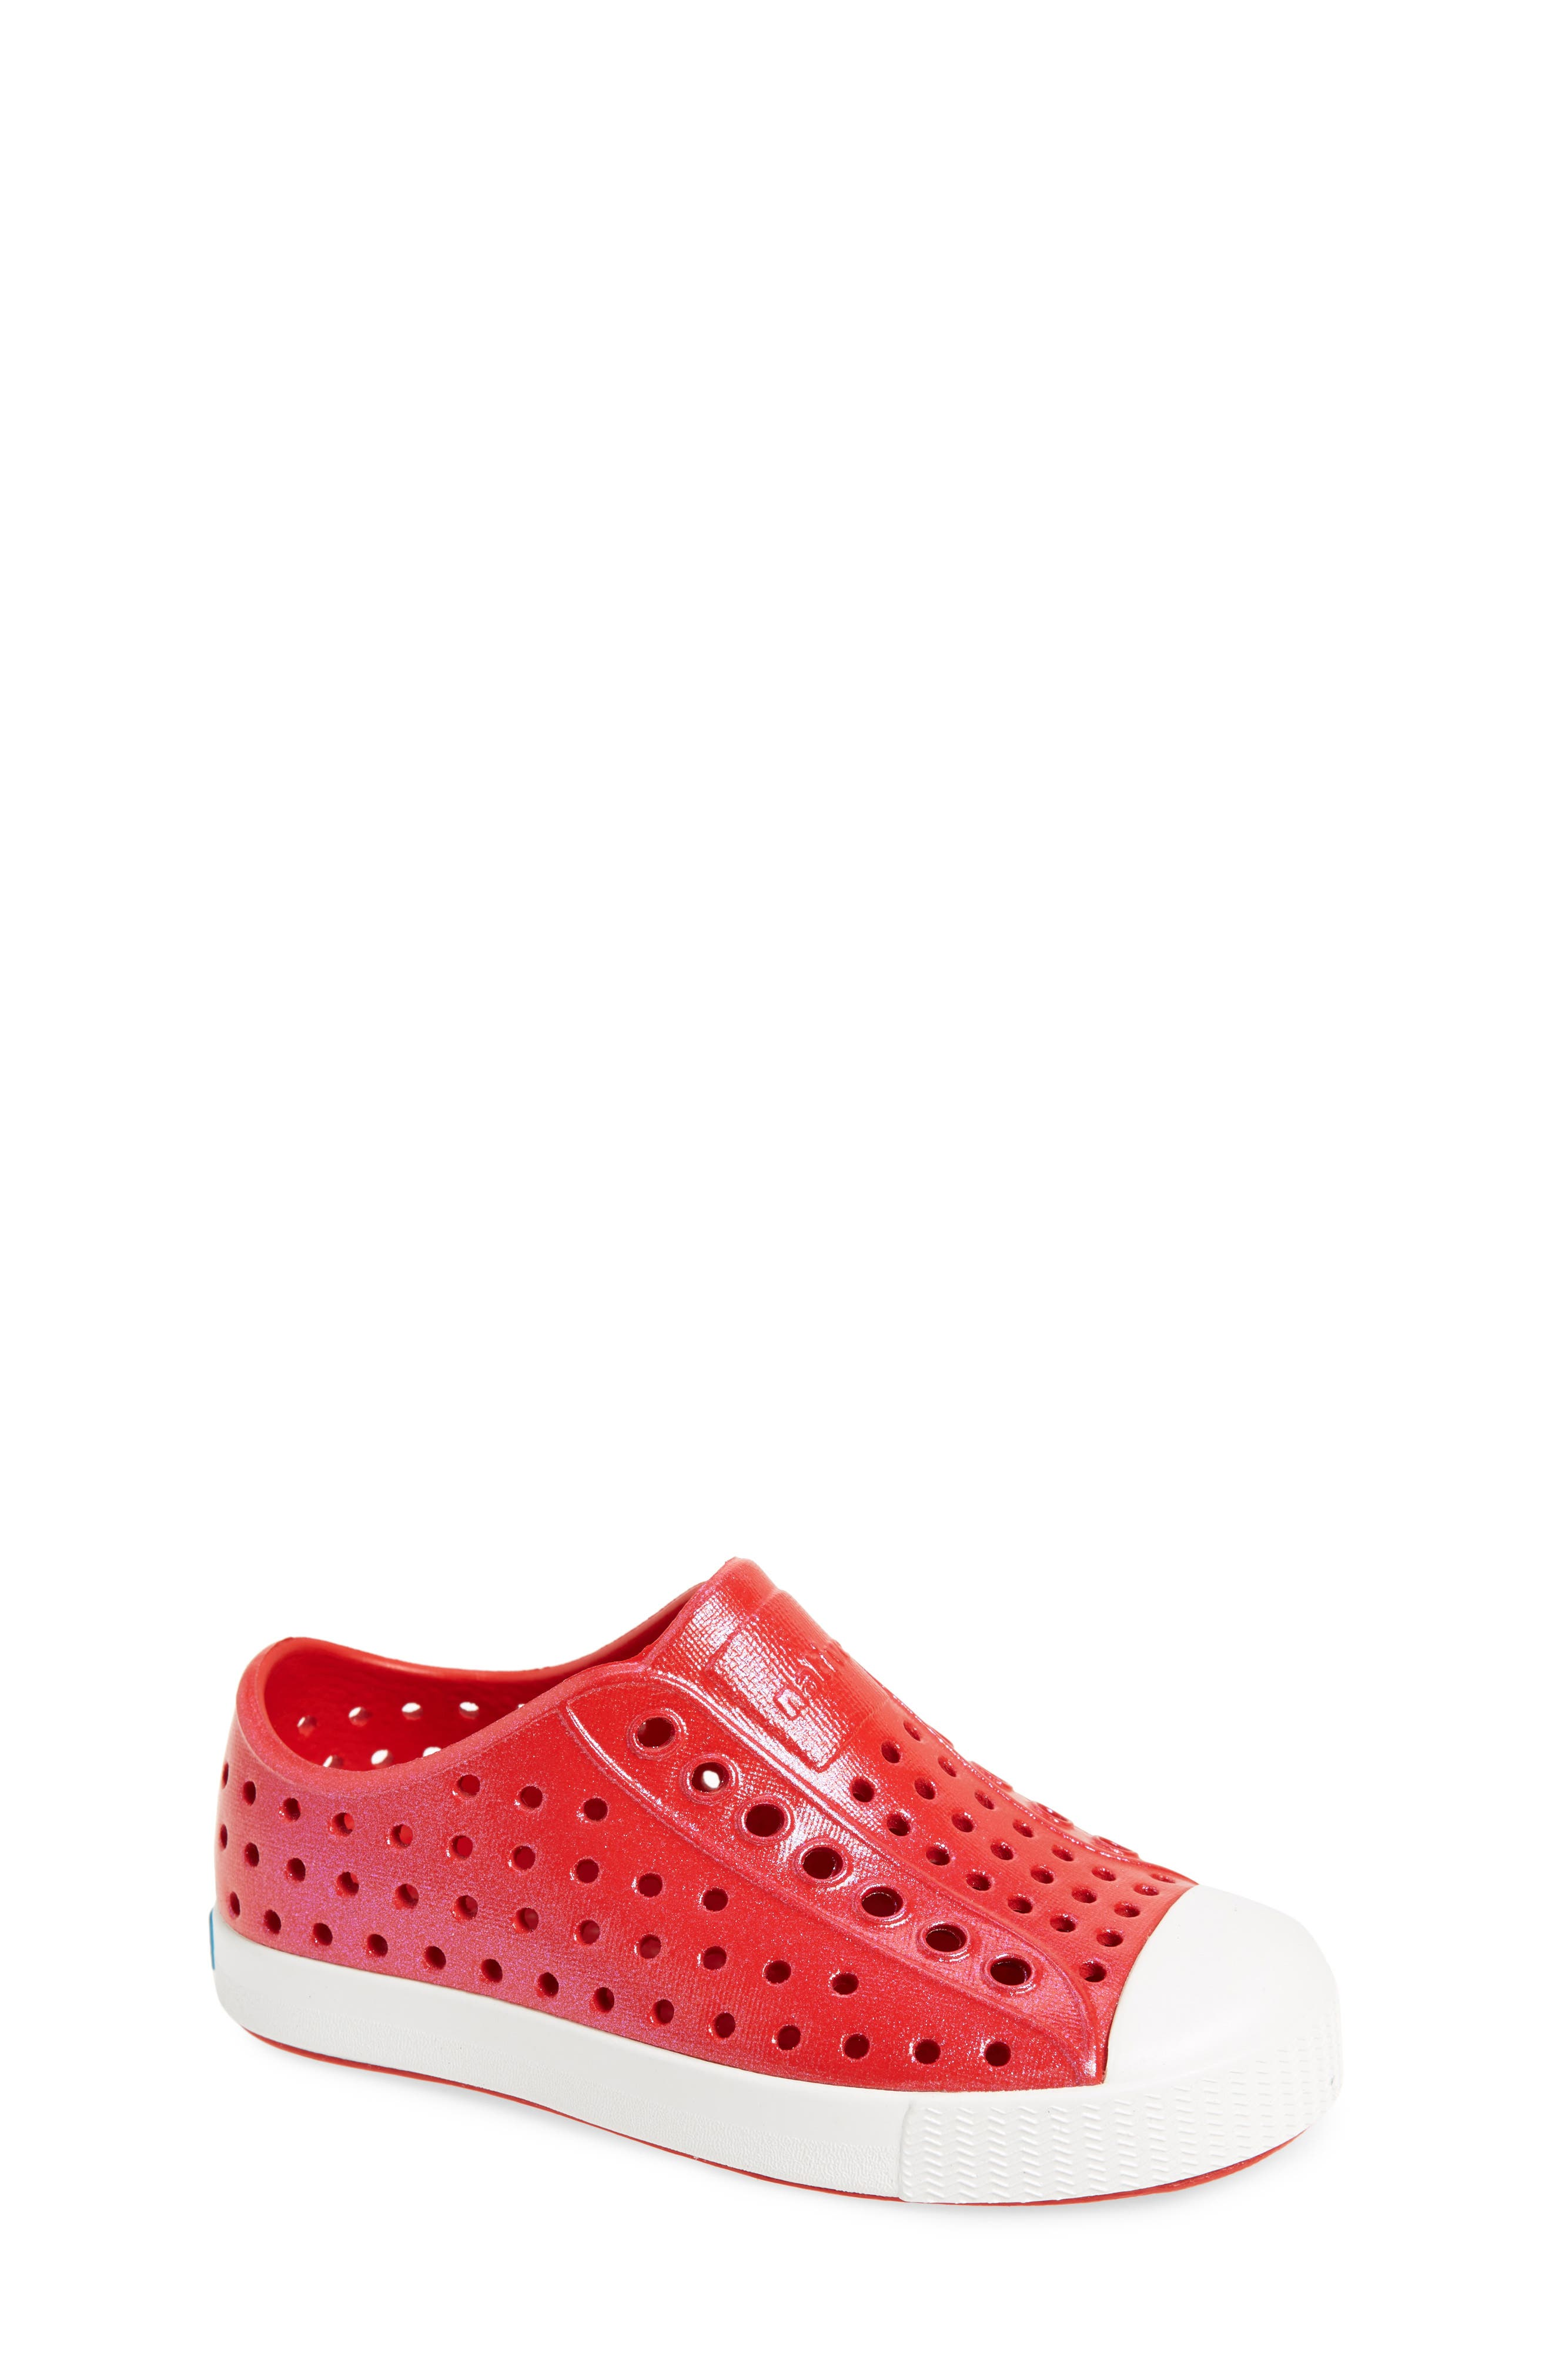 'Jefferson' Iridescent Slip-On Sneaker,                         Main,                         color, Torch Red/ Shell White/ Galaxy